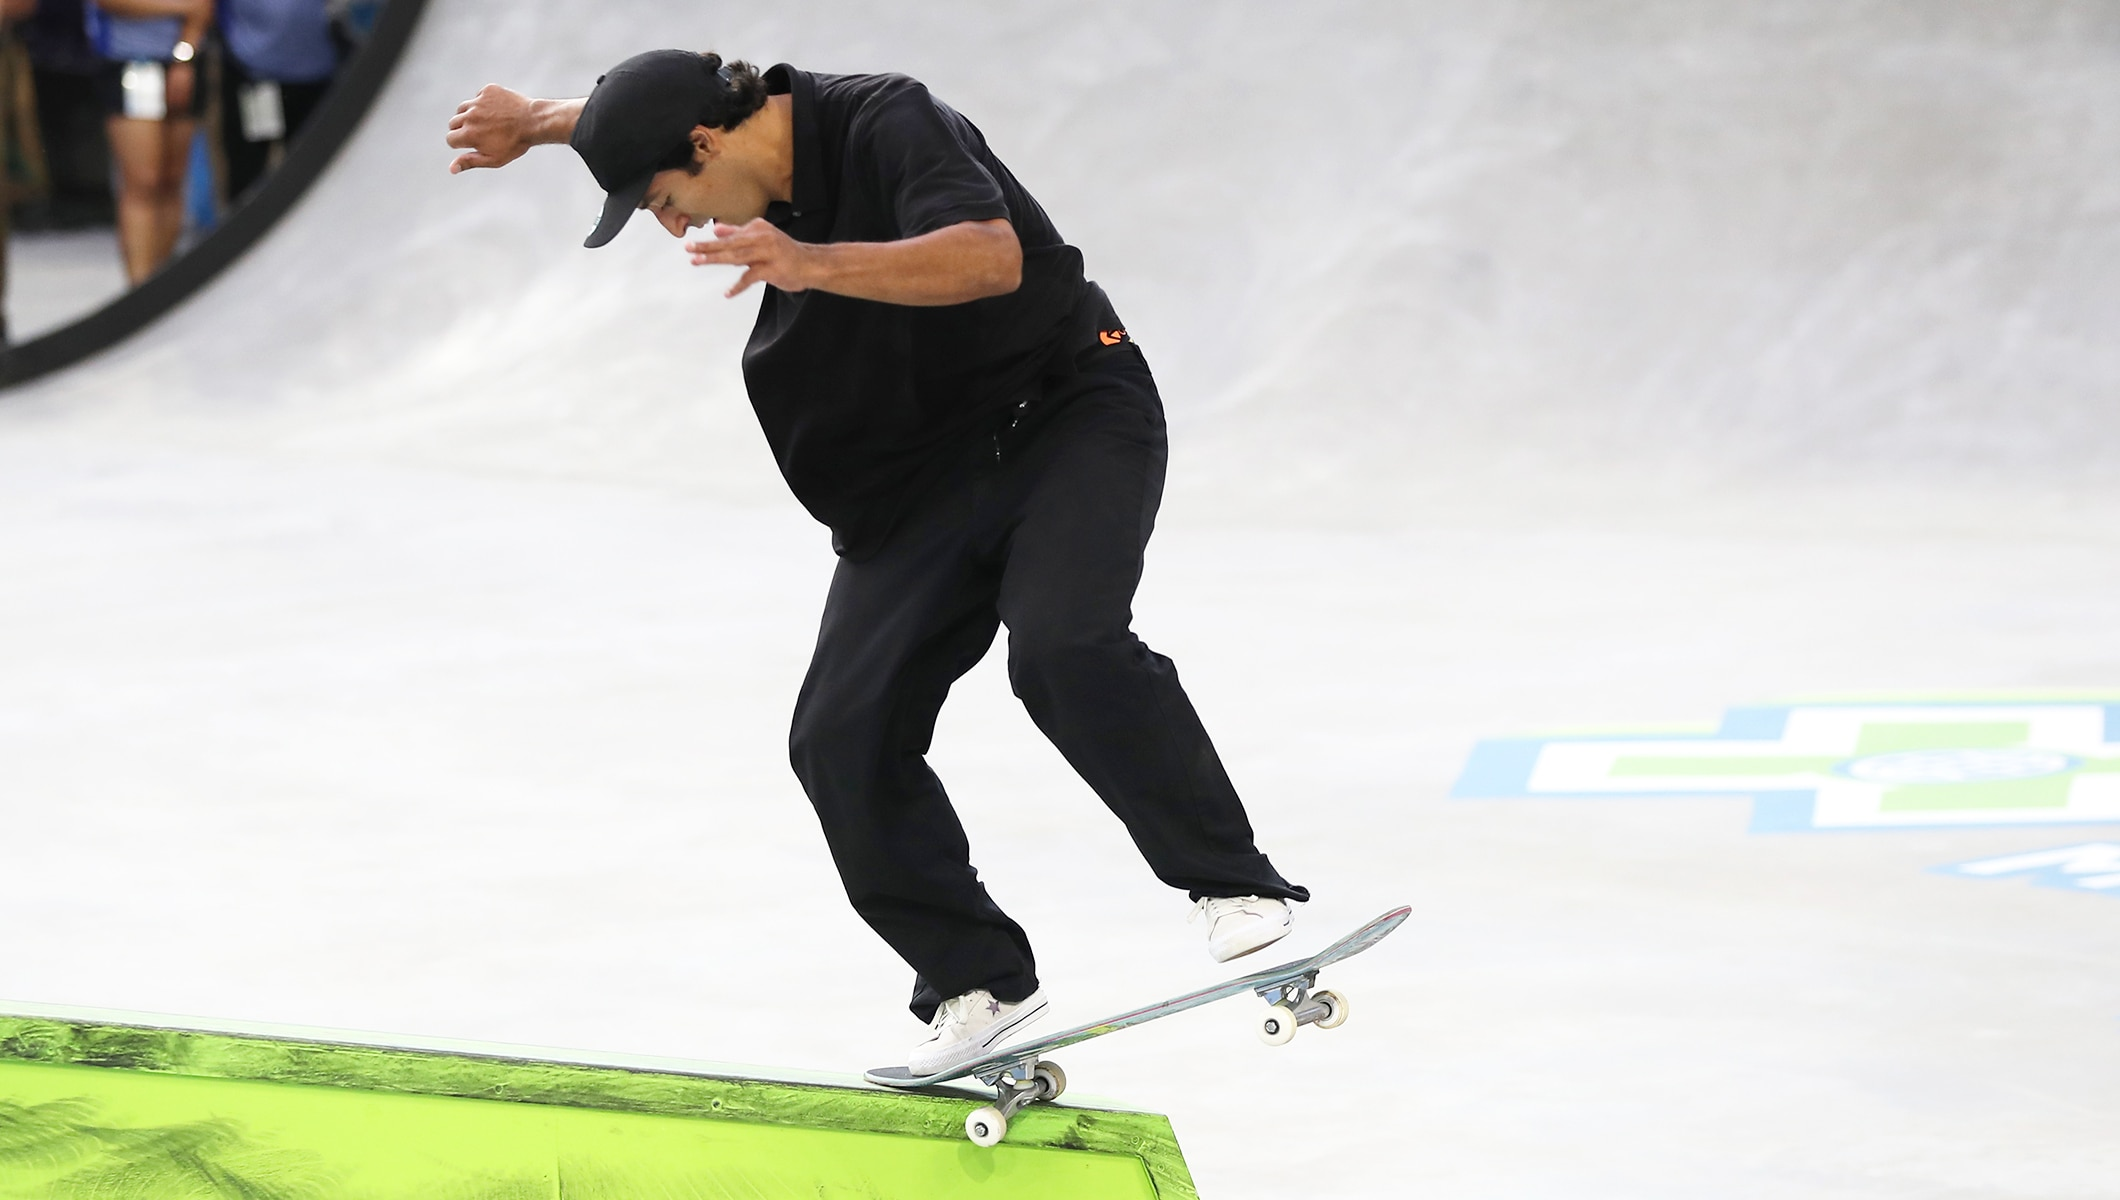 Secrets of skateboarding with double X Games gold medallist Kelvin Hoefler - Olympic News - Olympics